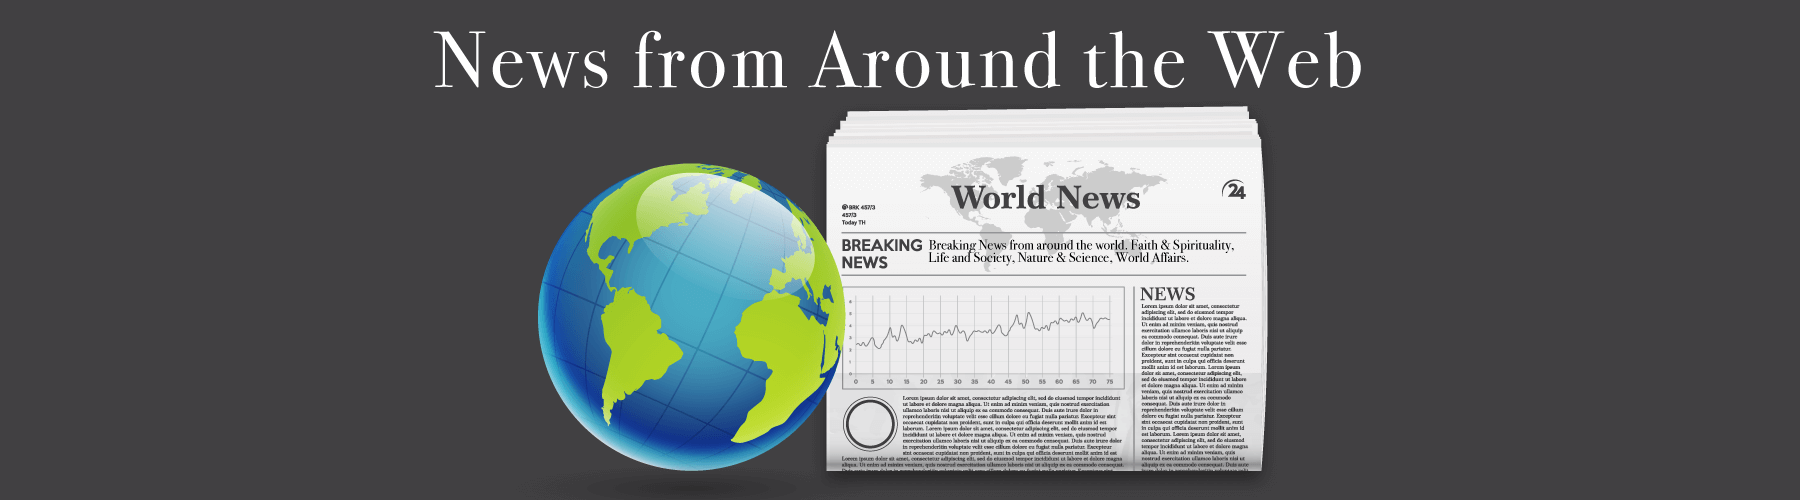 news from around the web